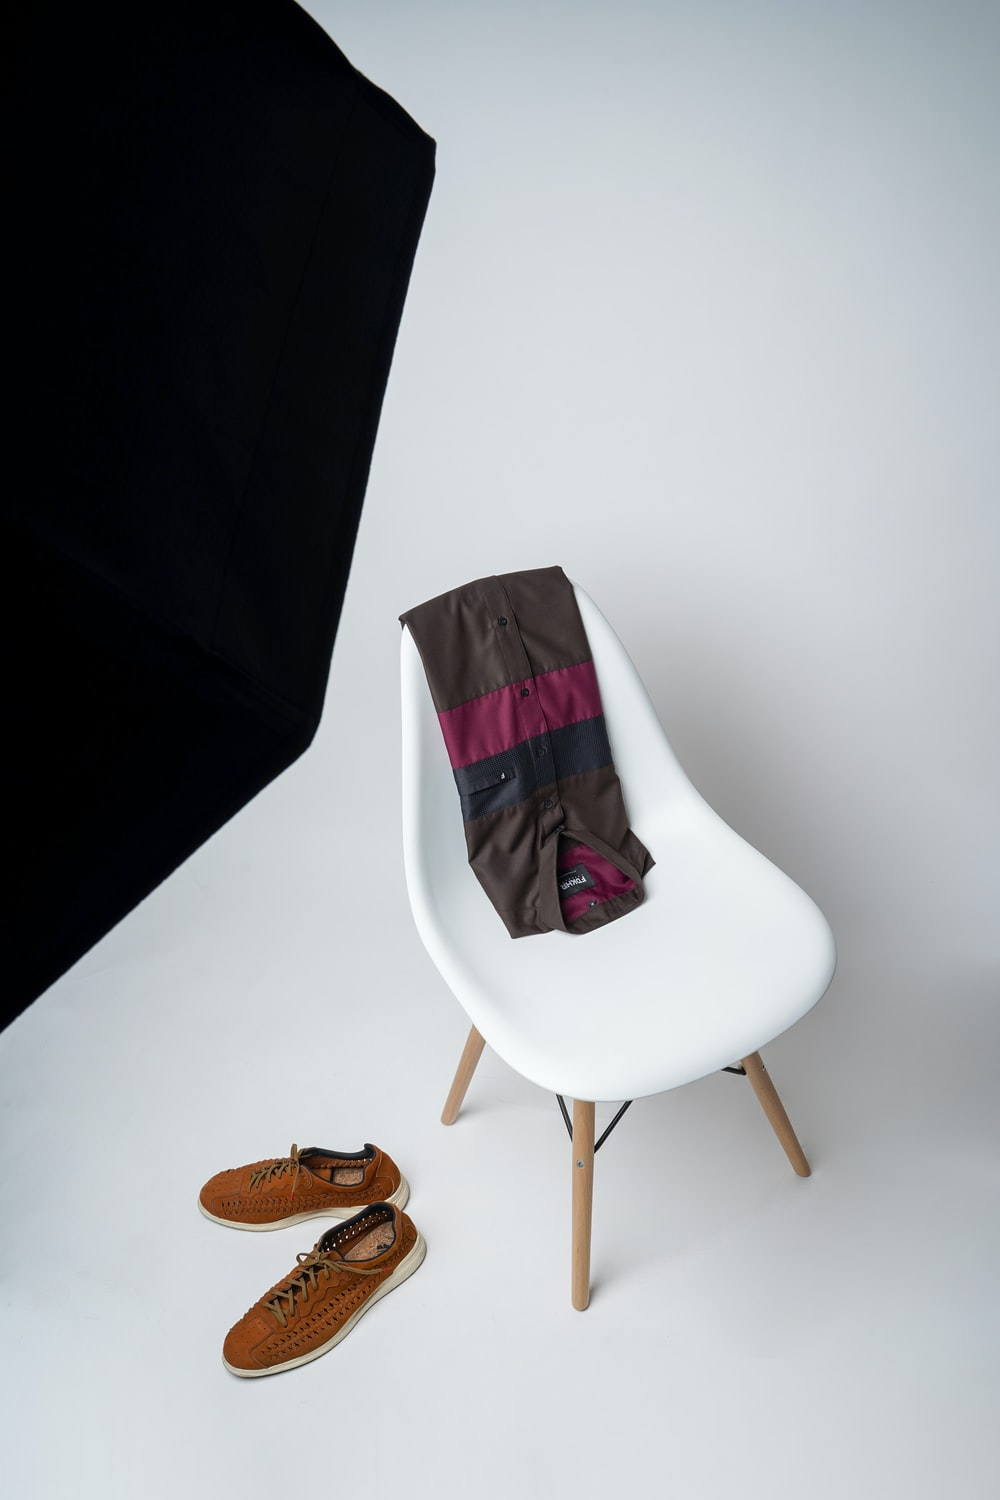 white and red padded chair